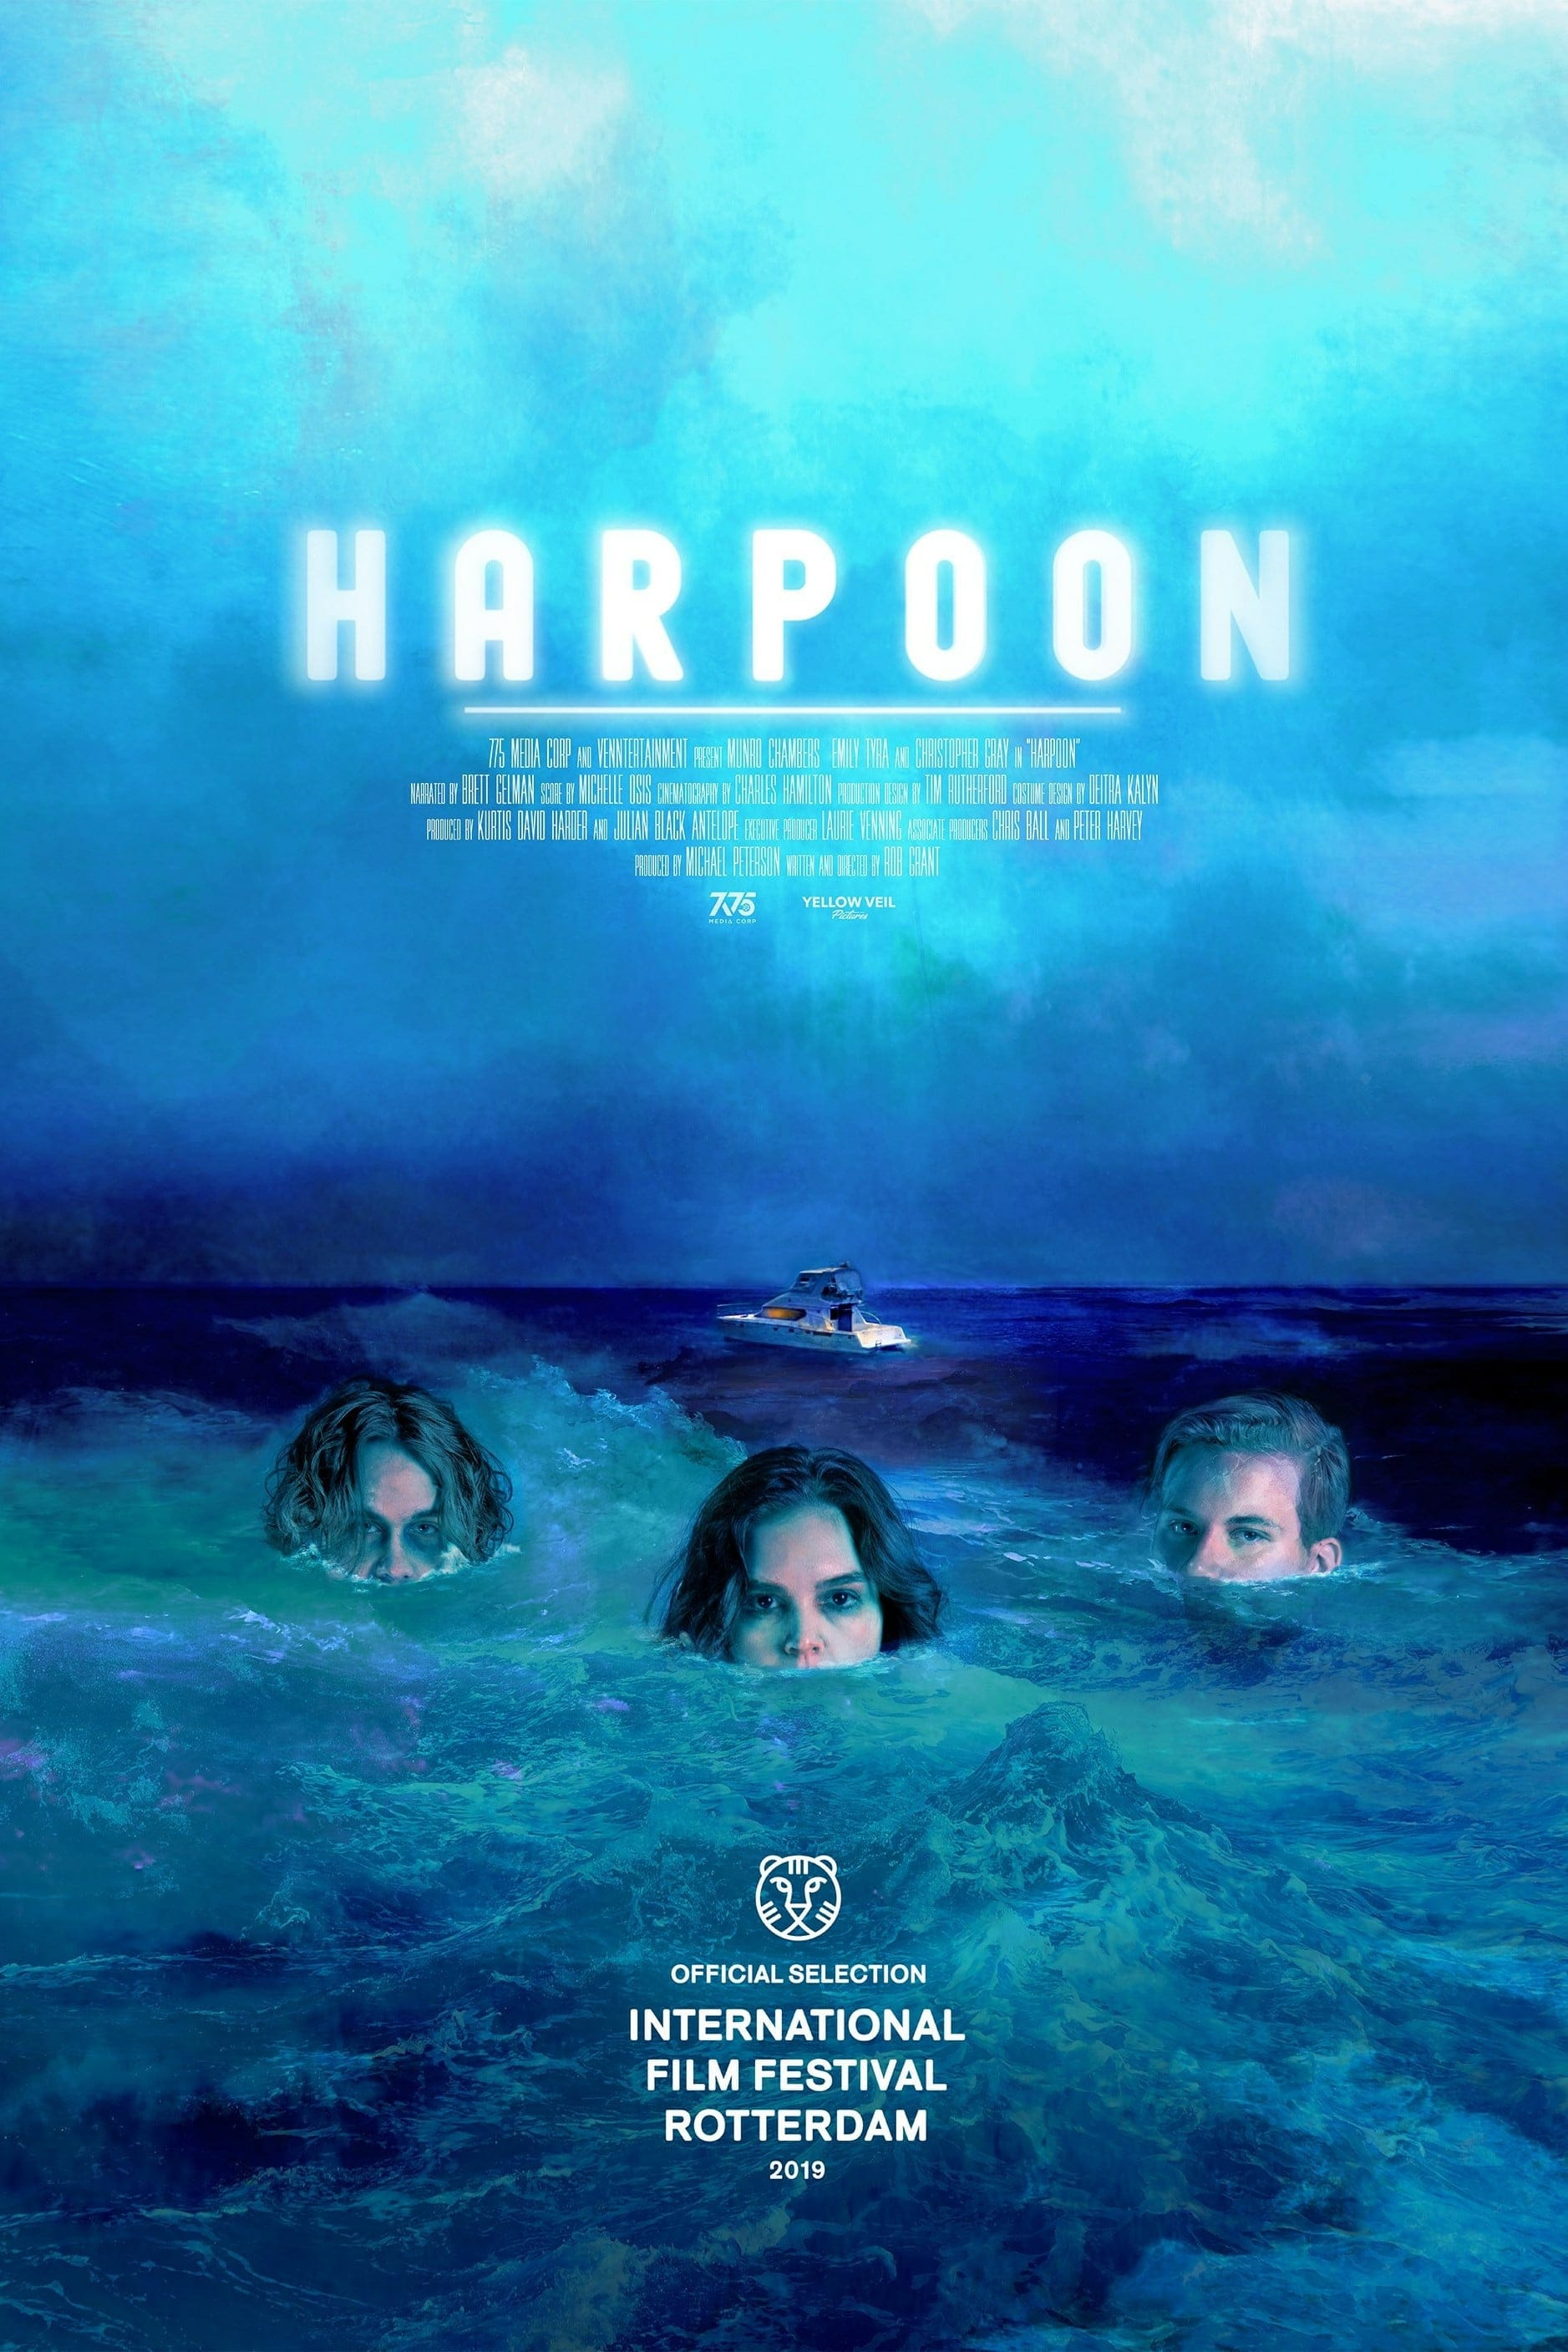 Regarder Harpoon en streaming gratuit